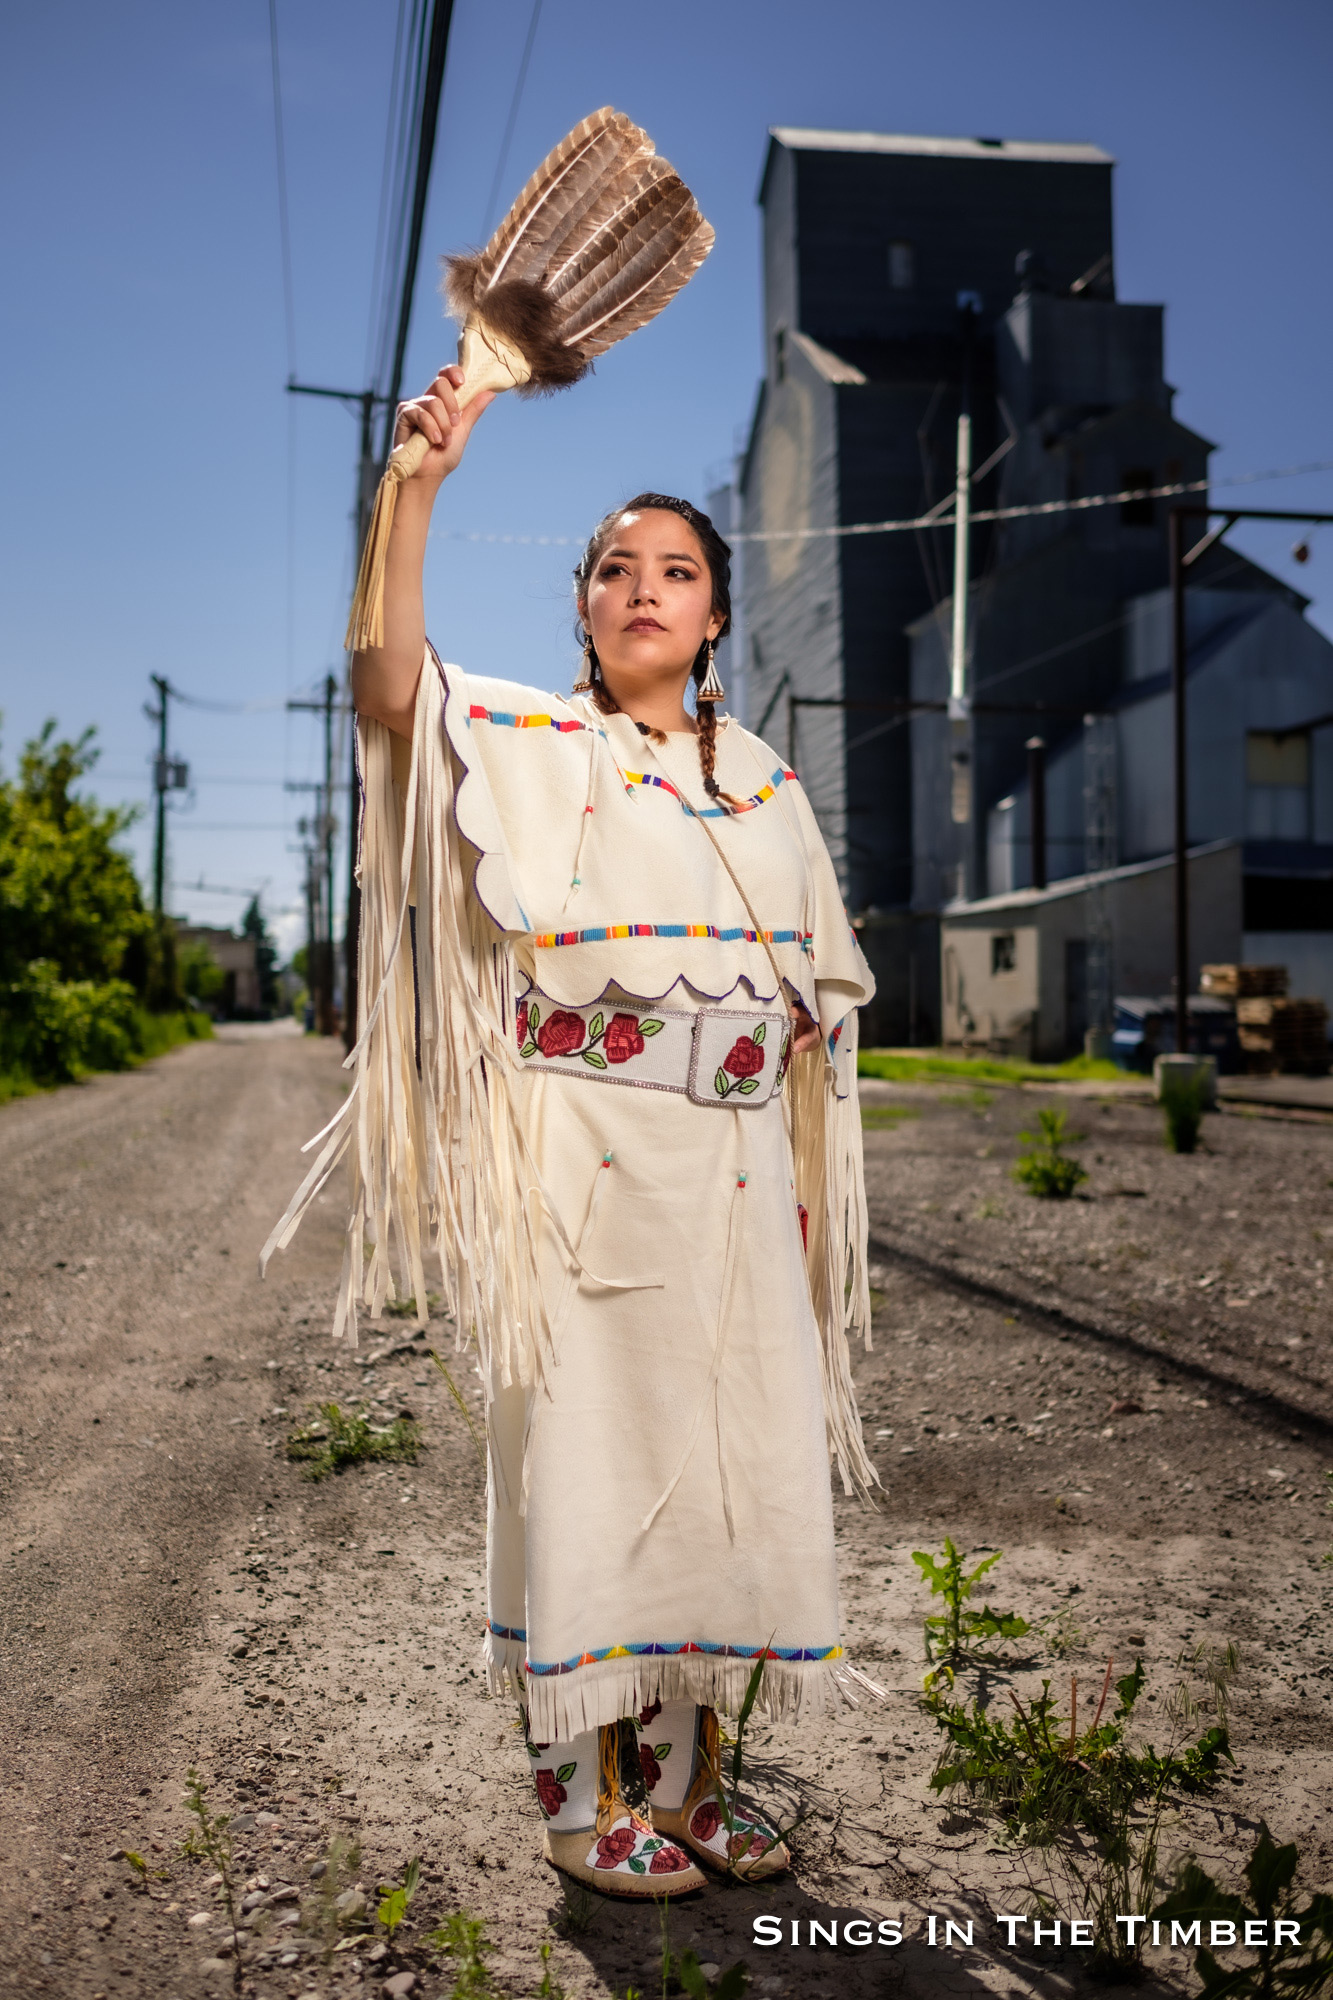 Adam Sings In The Timber, Apsáalooke/Crow,  Indigenizing Colonized Spaces with Alisha Nicole Fisher ,  Tsitsistas/Northern Cheyenne and Apsáalooke/Crow,  2019. Commissioned by Mountain Time Arts.